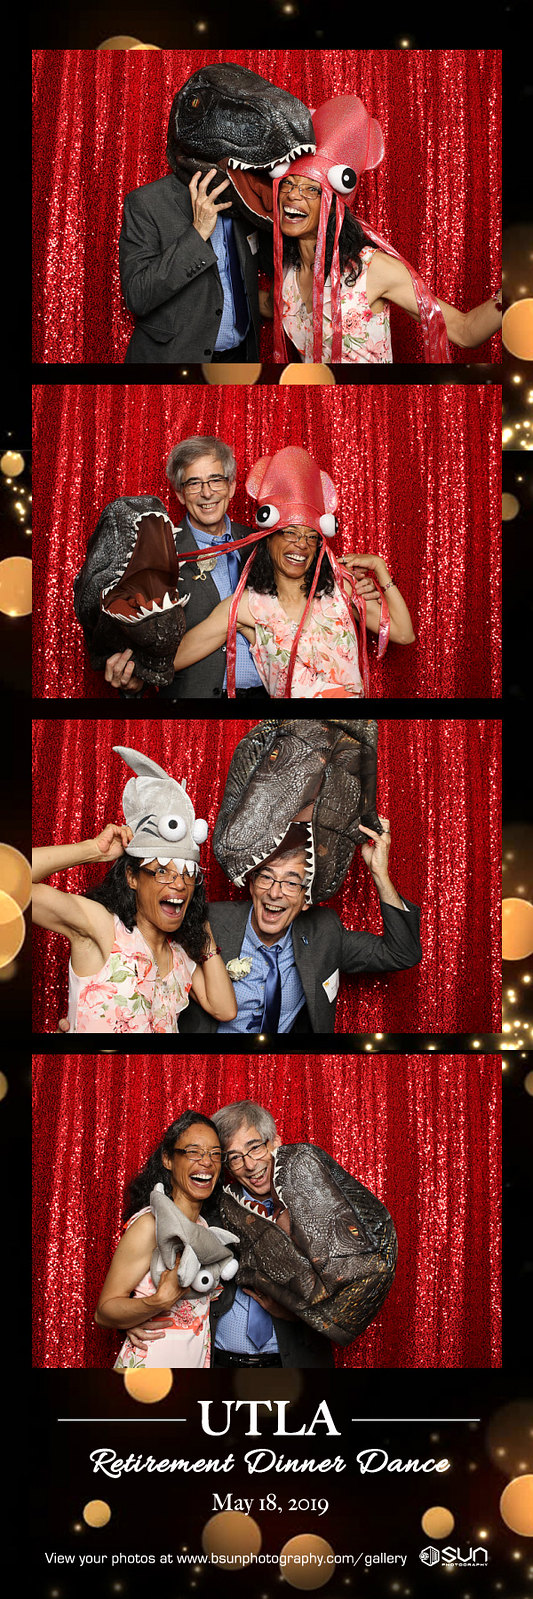 2019 Retirement Dinner Dance Photo Booth